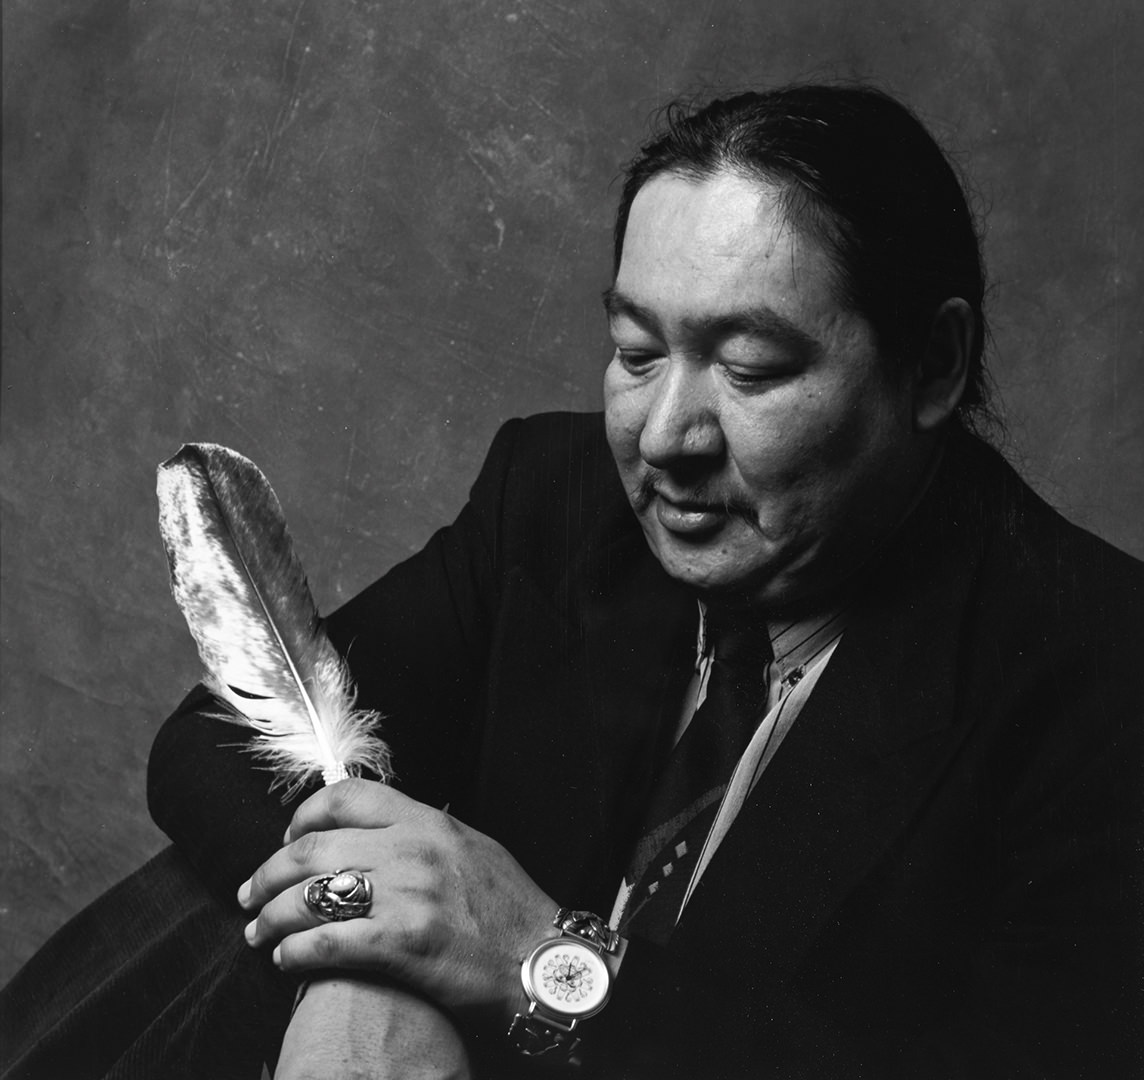 13 / 17 Chief Elijah Harper (1990) David Neel (1960 - ) Photographie n/b Collection : Banque d'art du Conseil des arts du Canada